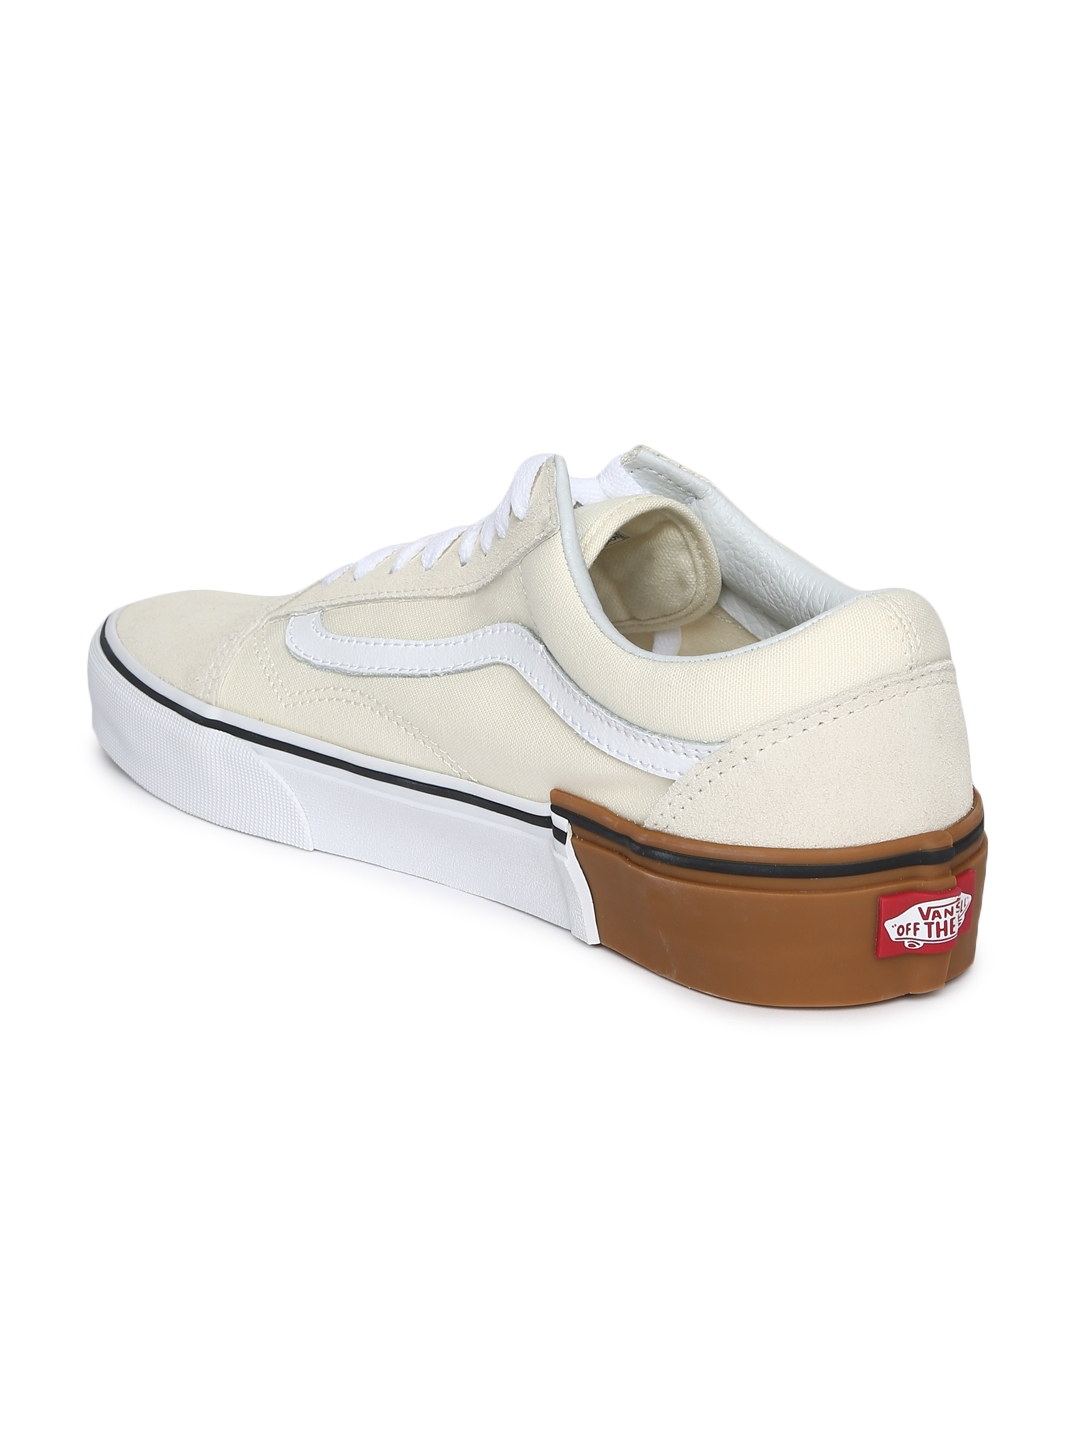 52dd714994 Buy Vans Unisex Off White Sneakers - Casual Shoes for Unisex 7301227 ...